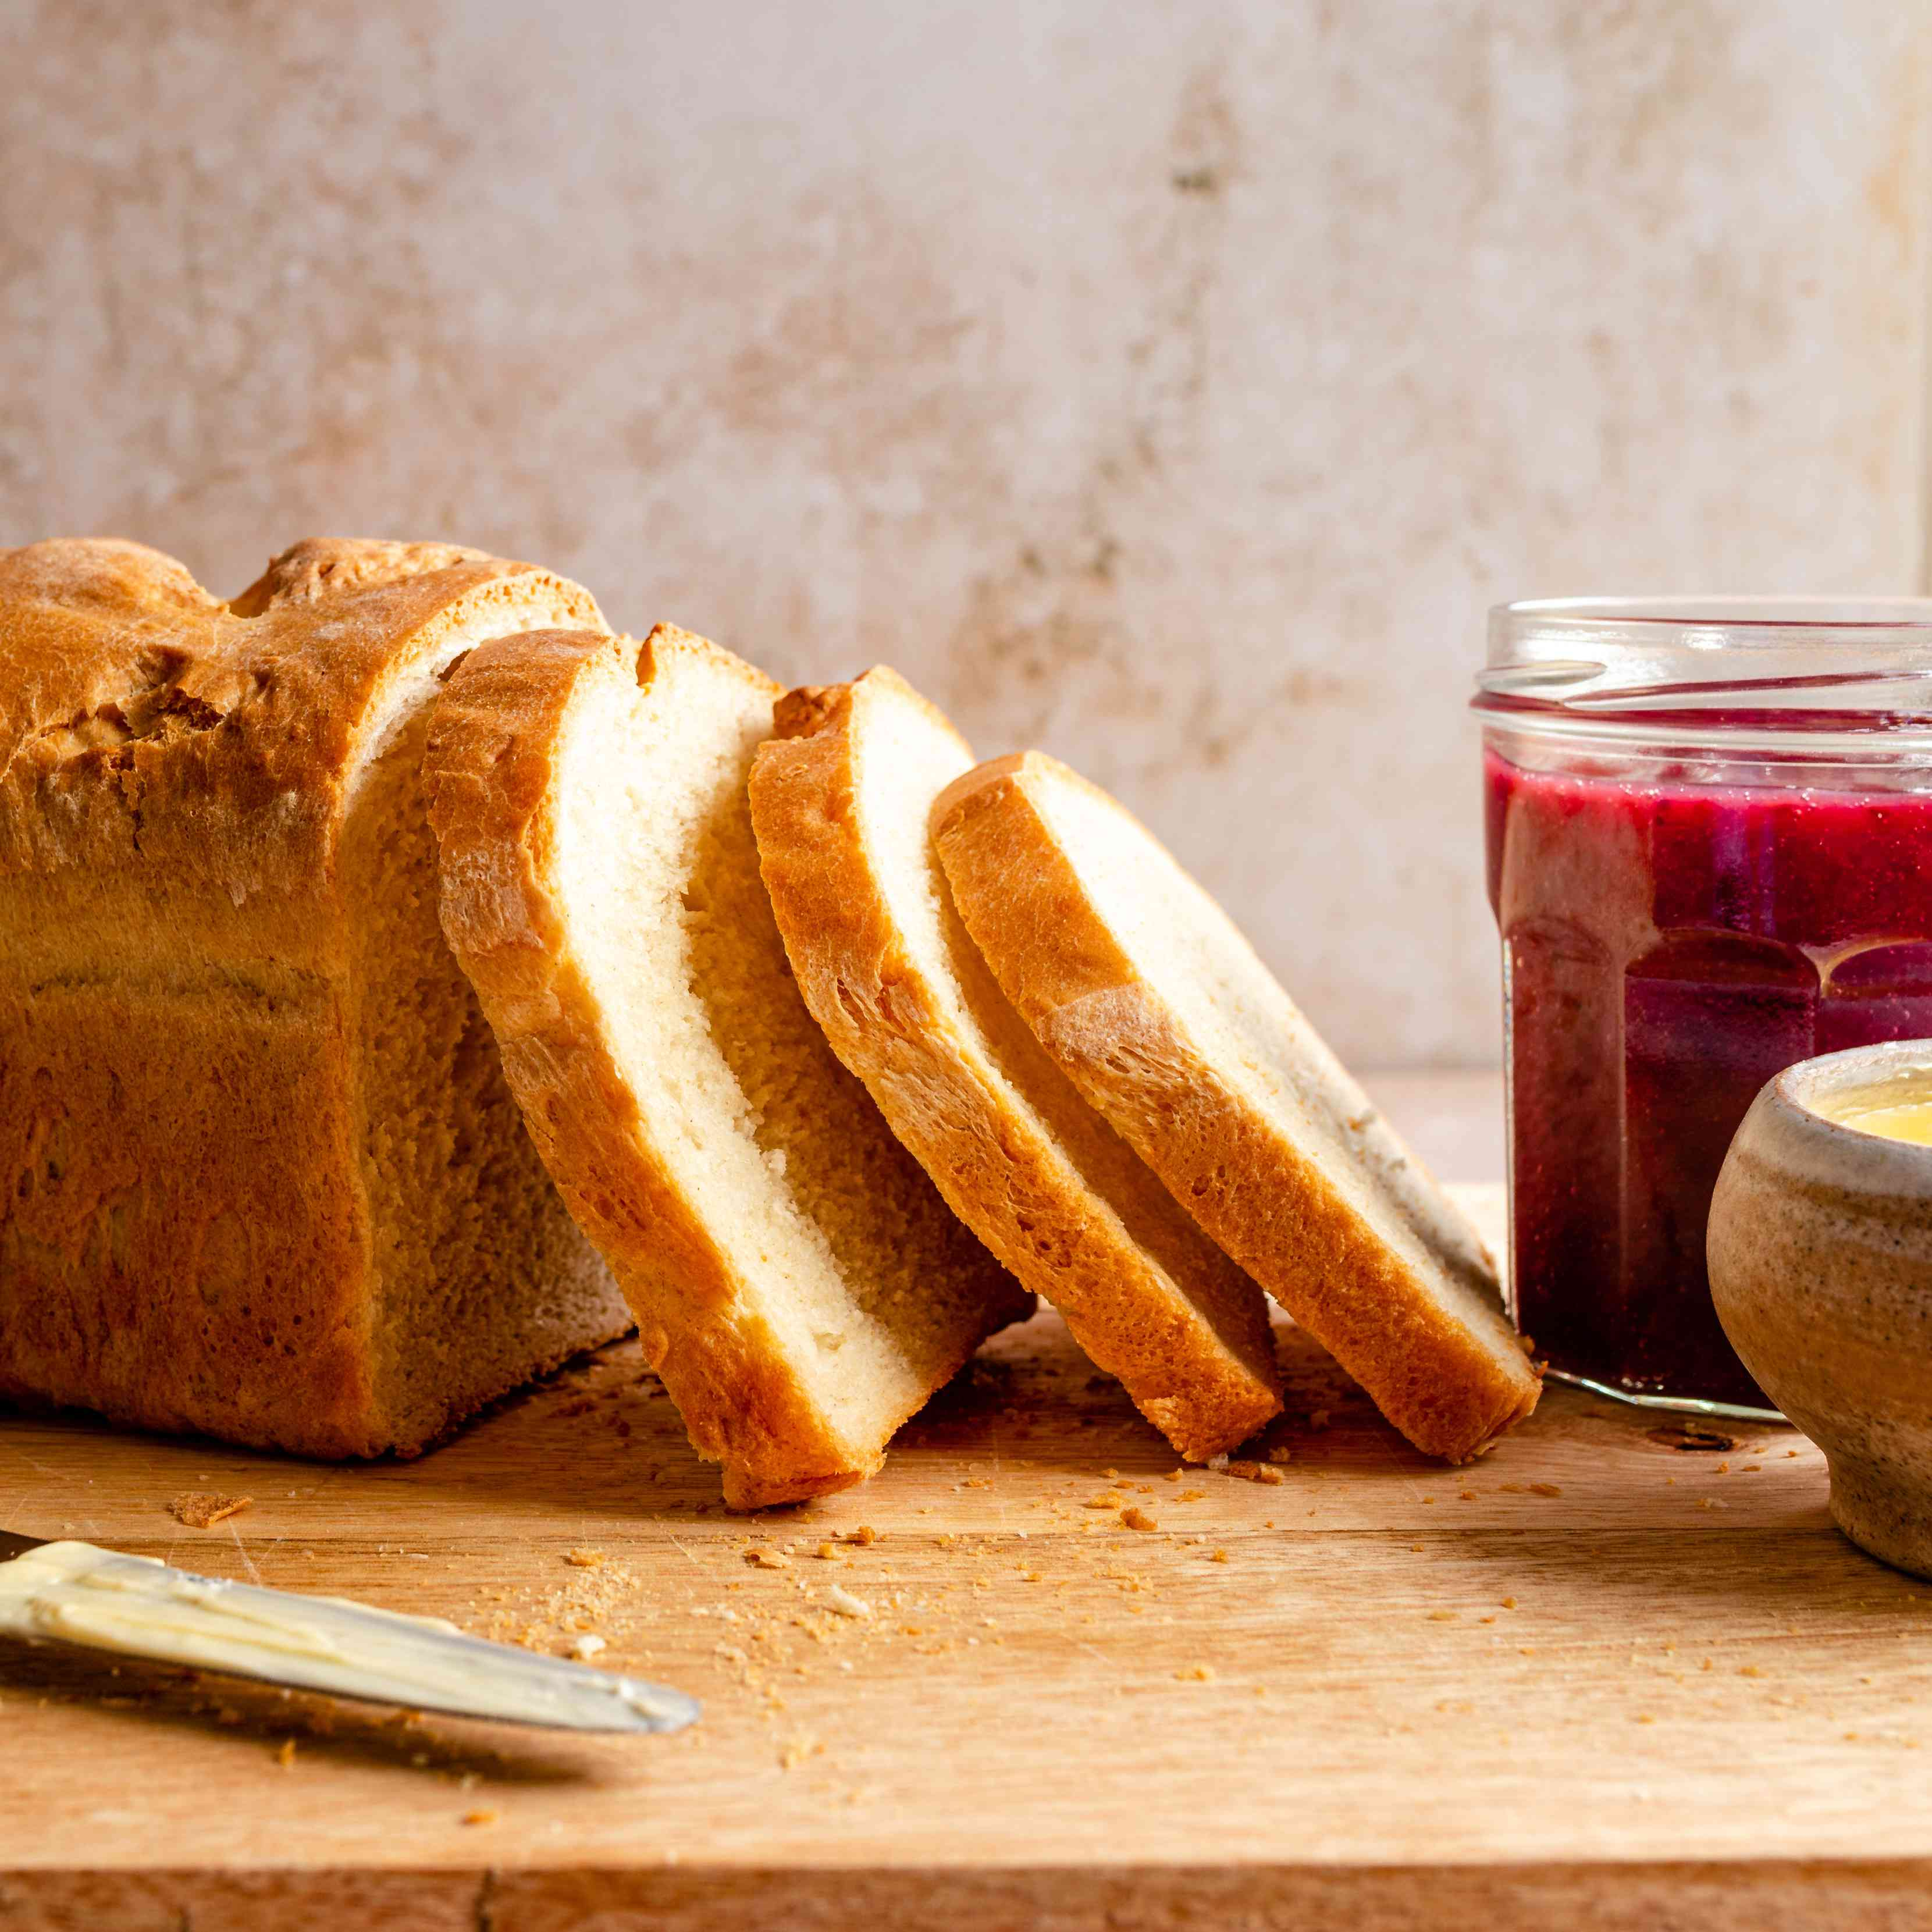 Sliced homemade bread with a jar of berry preserve